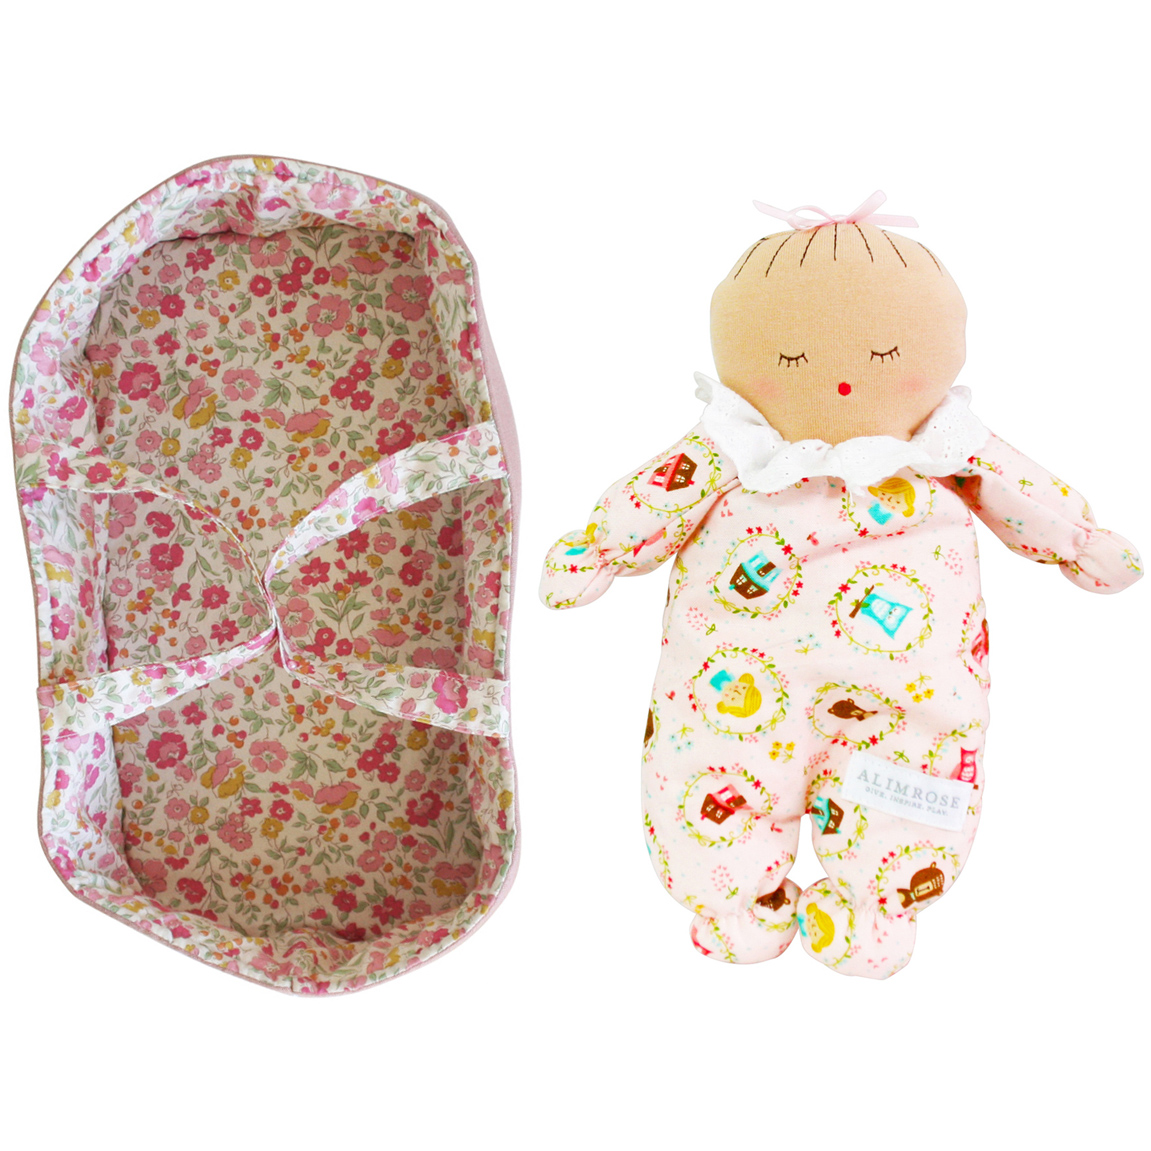 Baby Dolls & Carriers